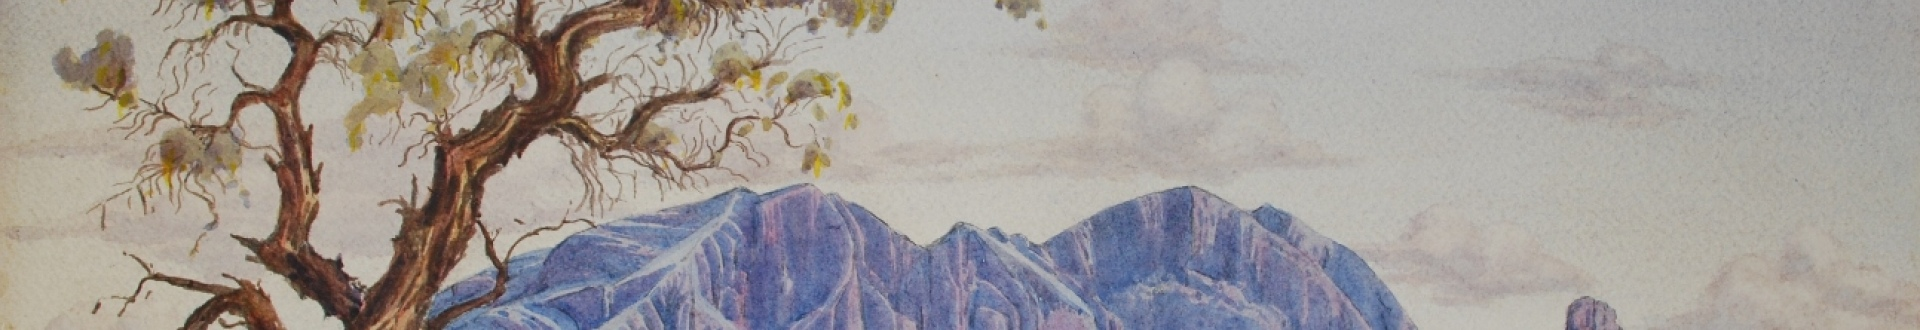 Albert Namatjira, Mount Sonder with Corkwood Tree